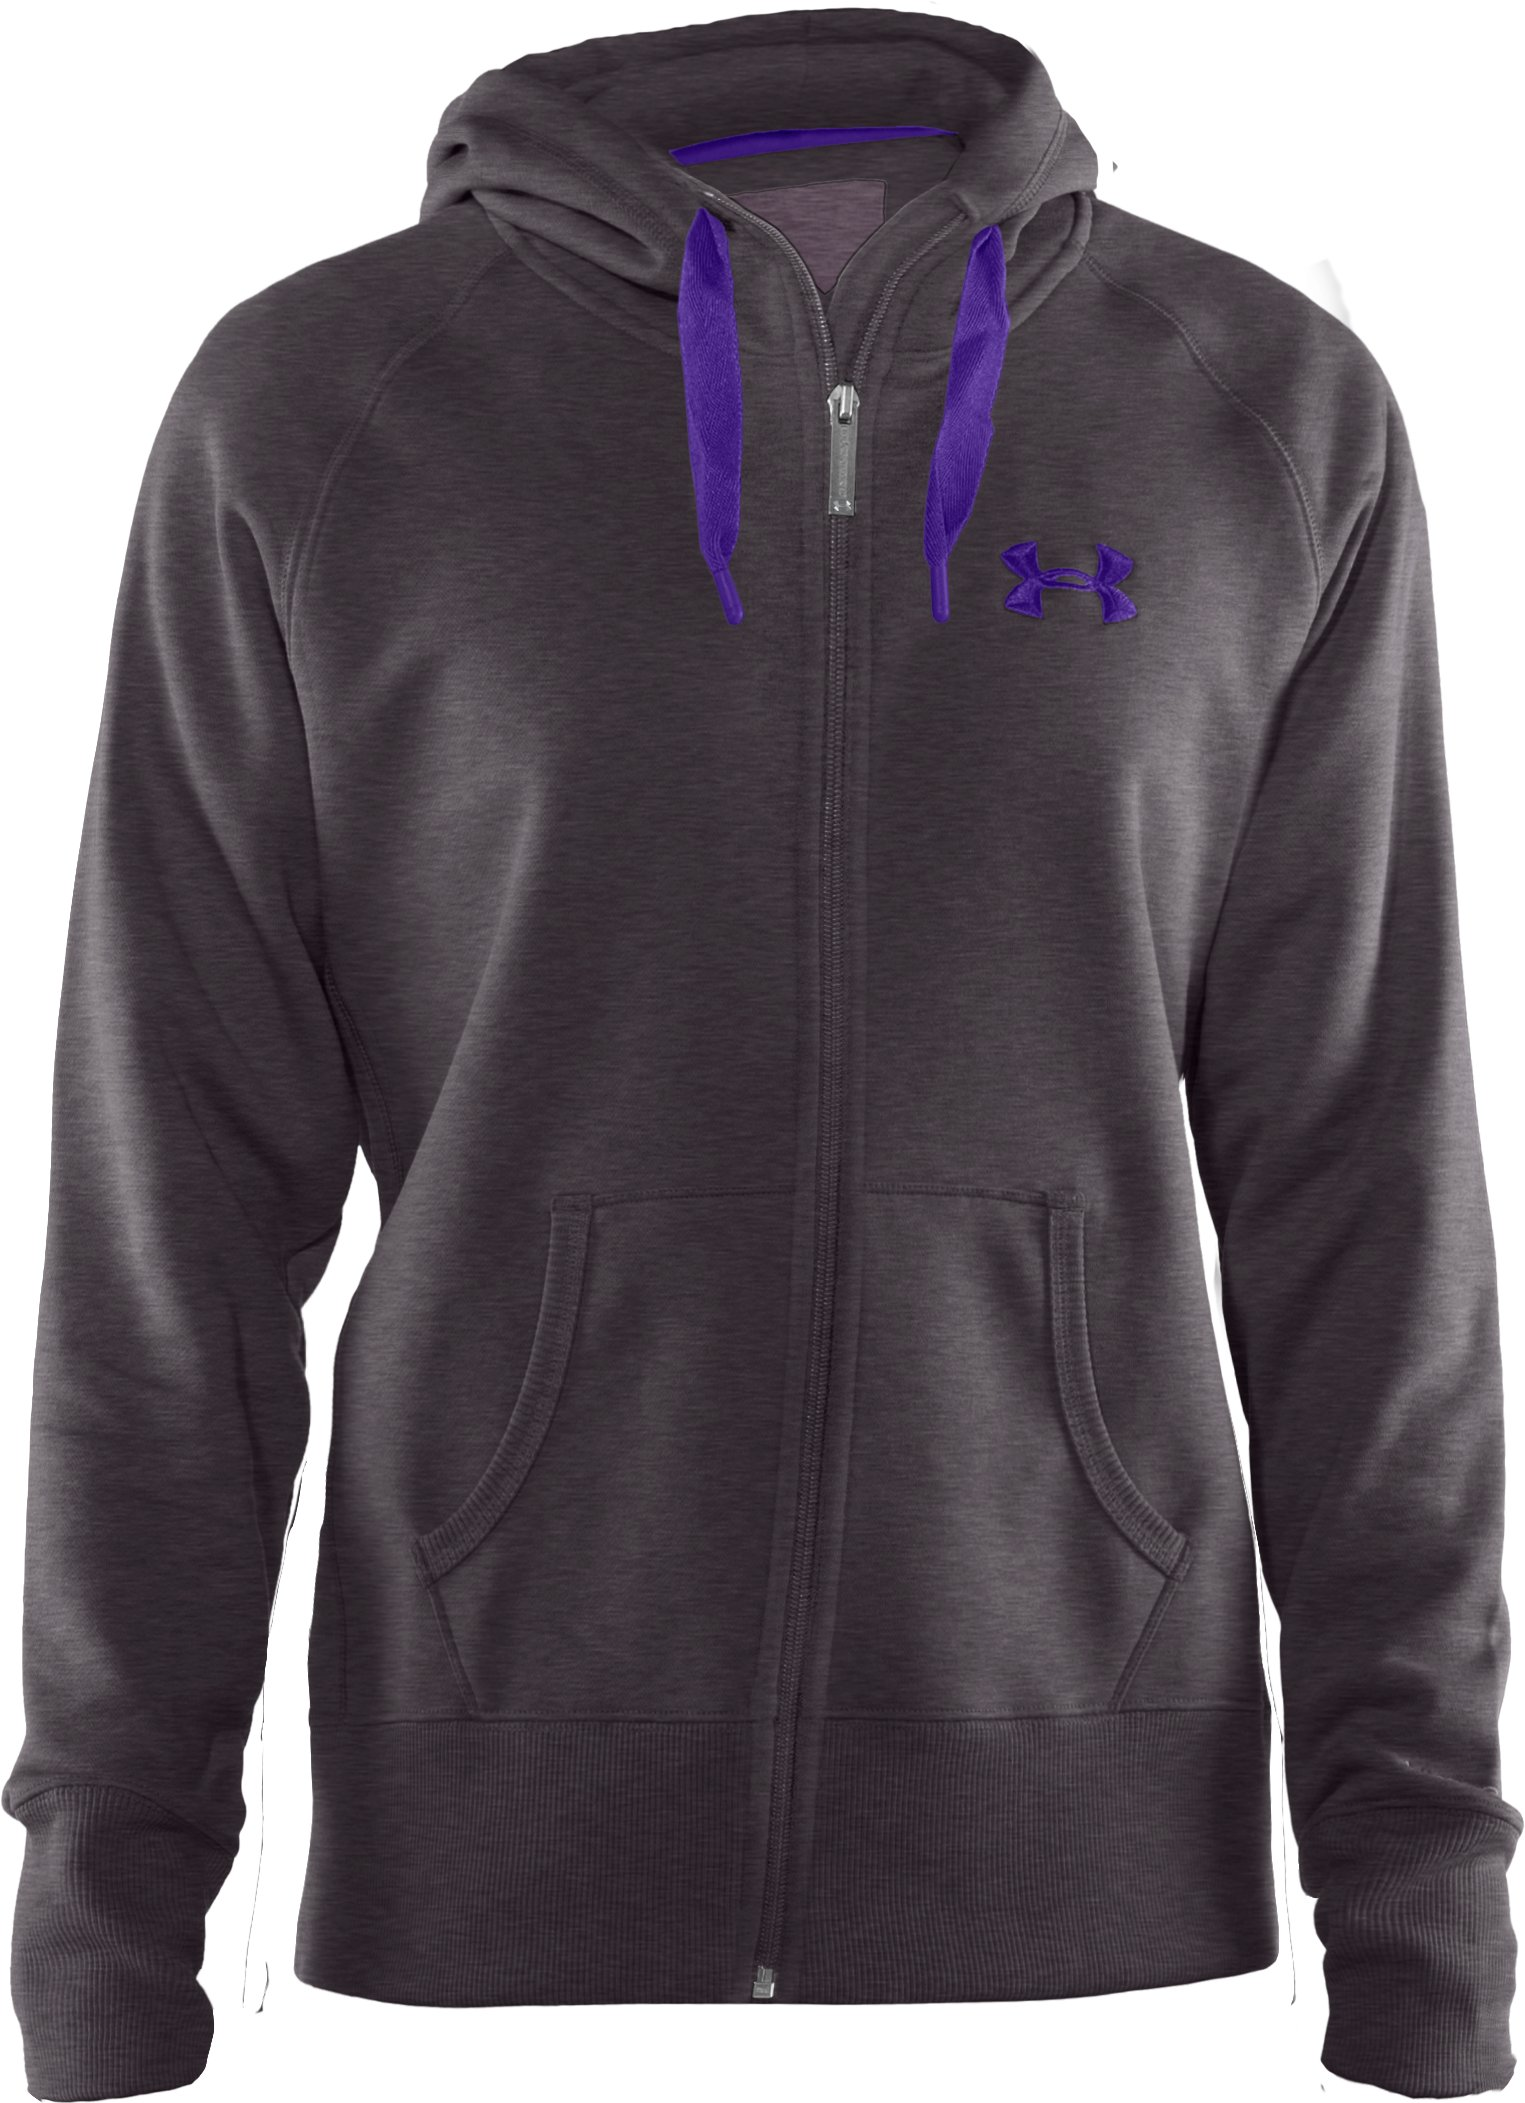 Women's Charged Cotton® Storm Full Zip Hoodie, Carbon Heather